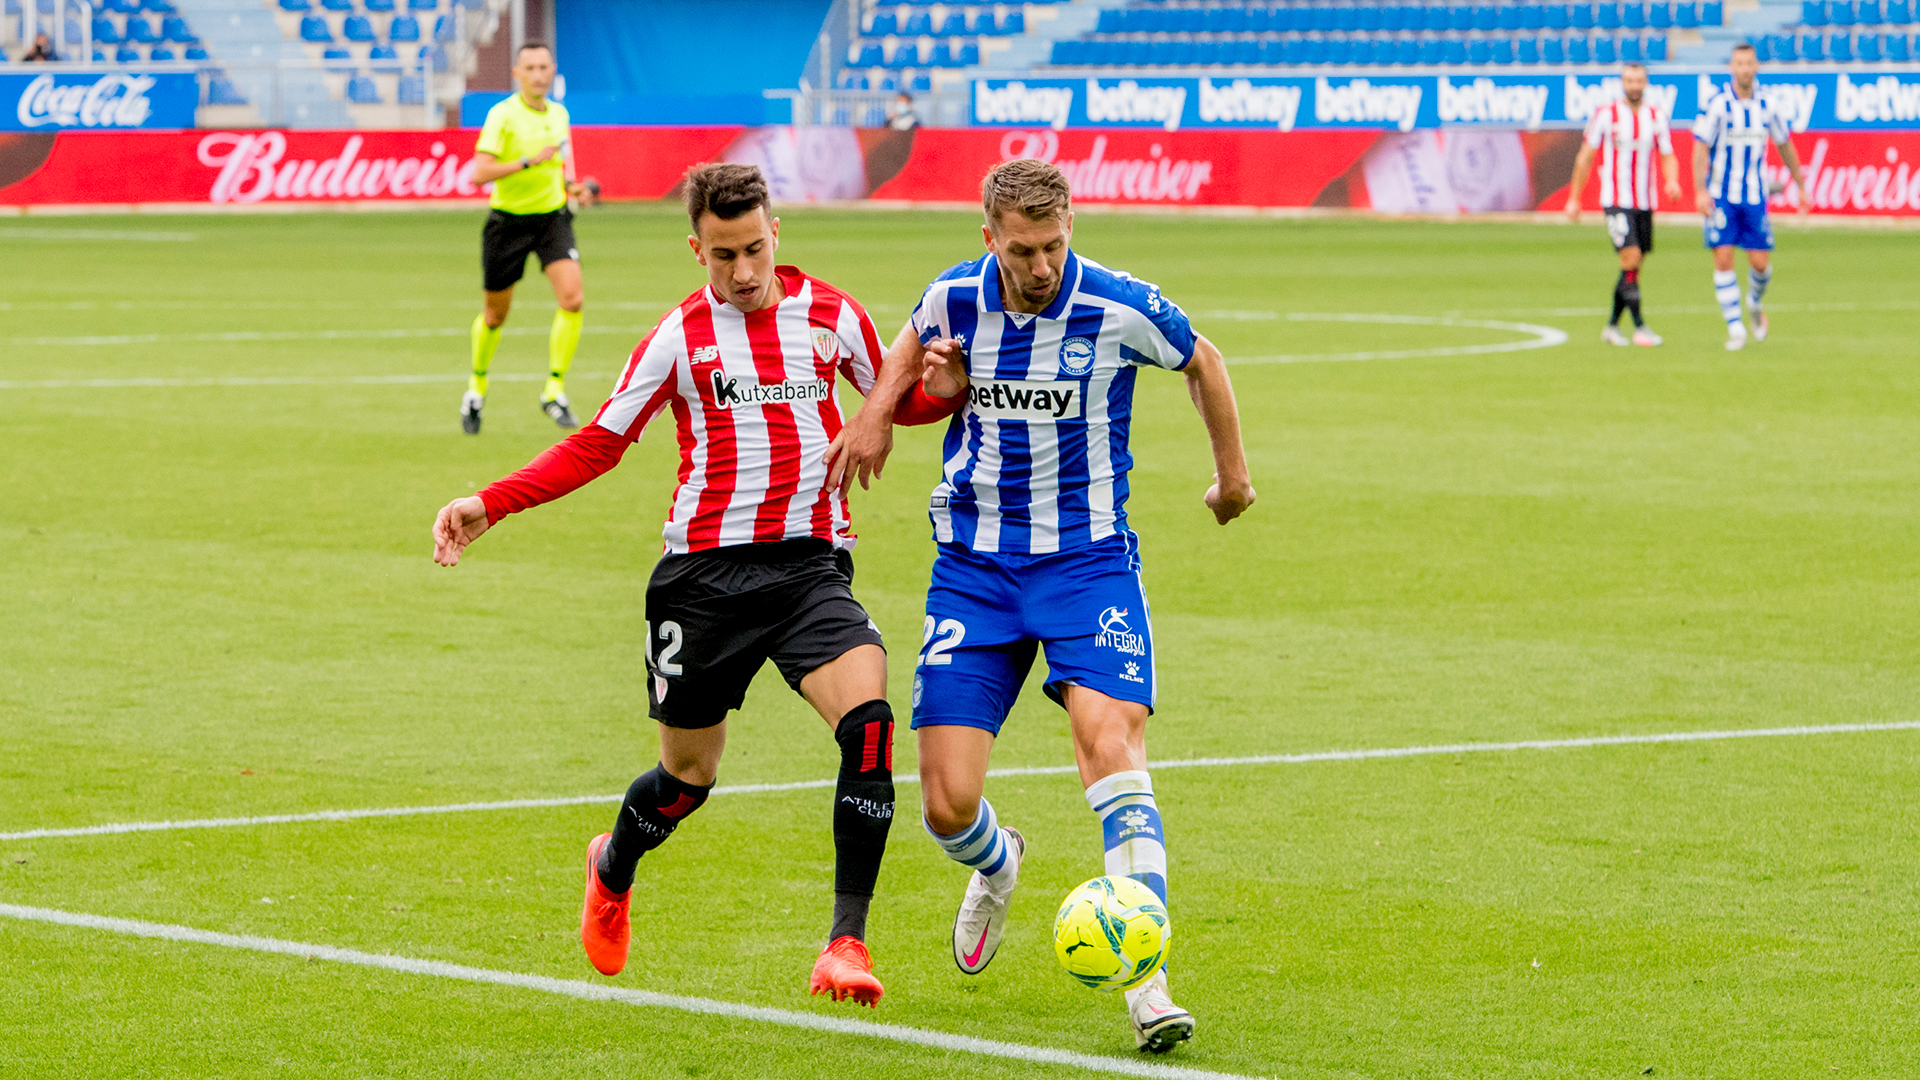 Athletic Club-Deportivo Alaves partidaren buletina deskargatu